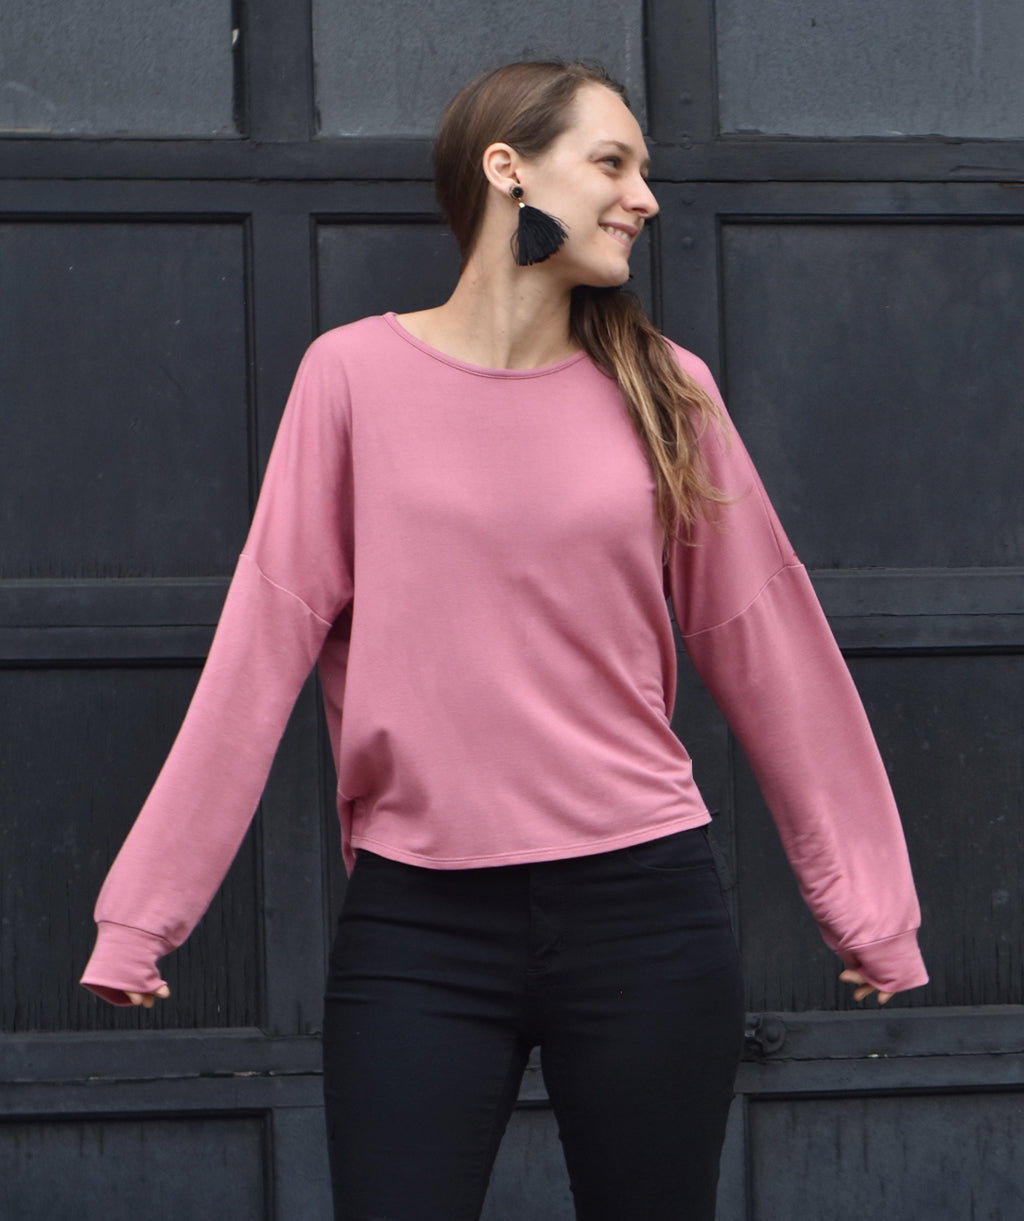 DELANCEY terry top in Mauve Pink